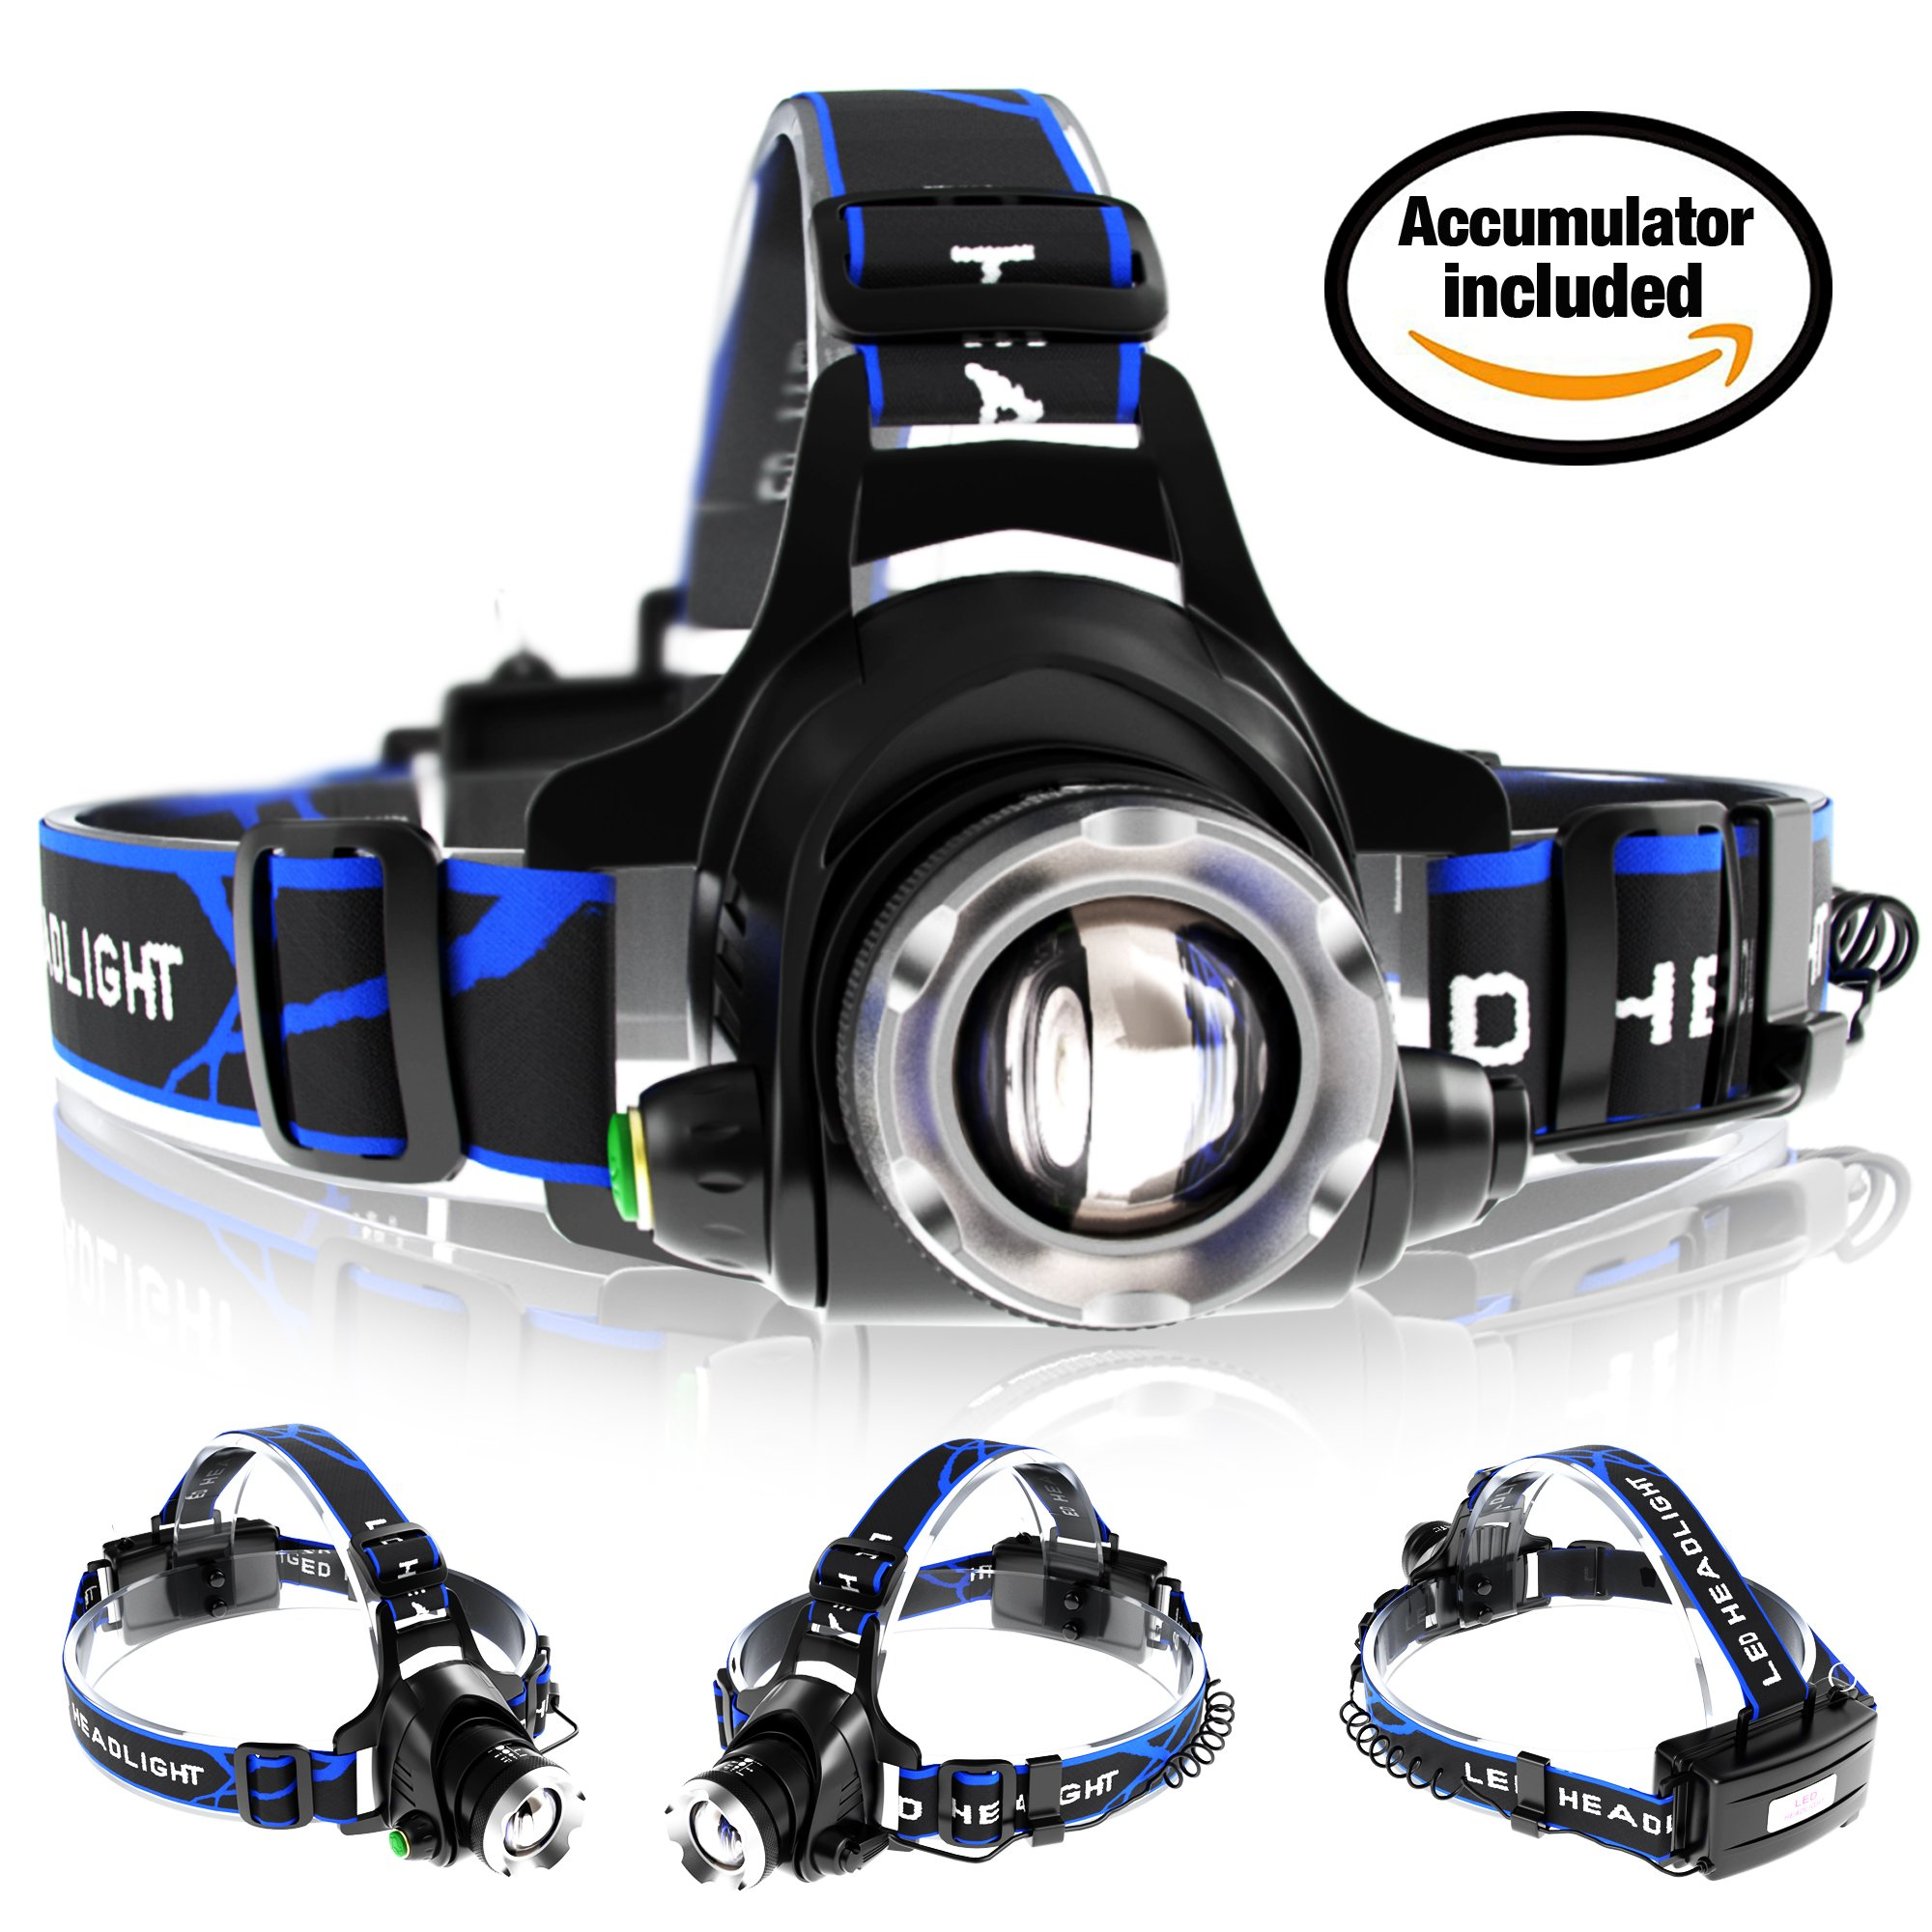 Zoomable Rechargeable Headlamp - LED Headlight Flashlight with Batteries - Head Flashlight - Best Tactical Headlamp - 2000 Lumen Hard Hat Light - Brightest Waterproof Led Head Lamp (Black) by Monger-Trend